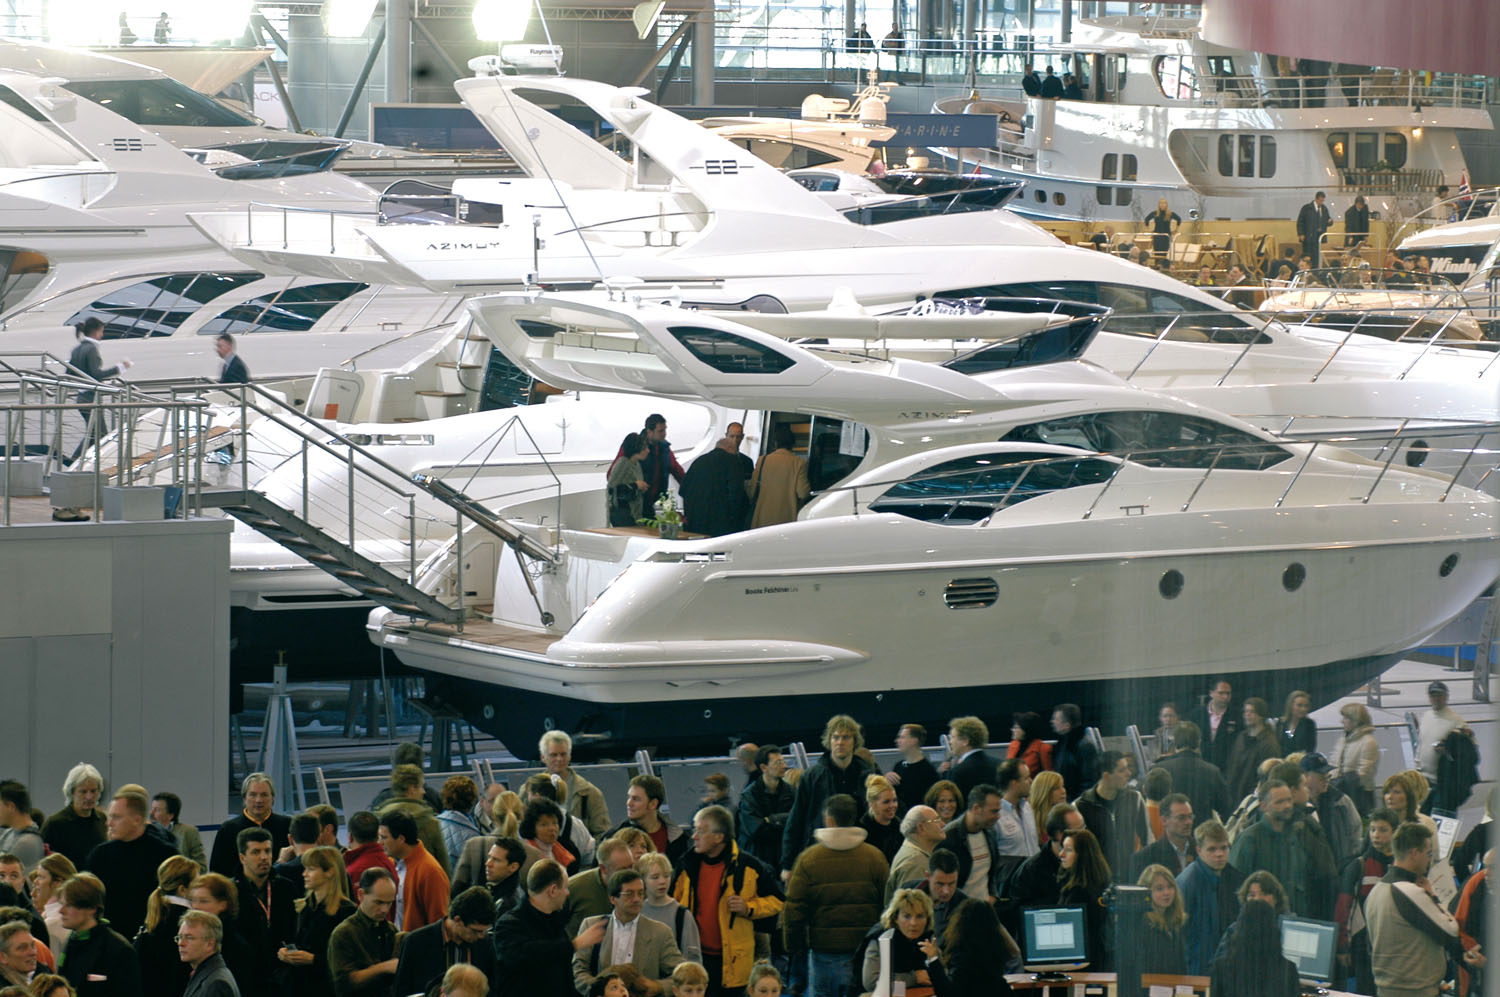 Die_boot_-_Messe_Duesseldorf__Duesseldorf_Marketing__Tourismus_GmbH_RET